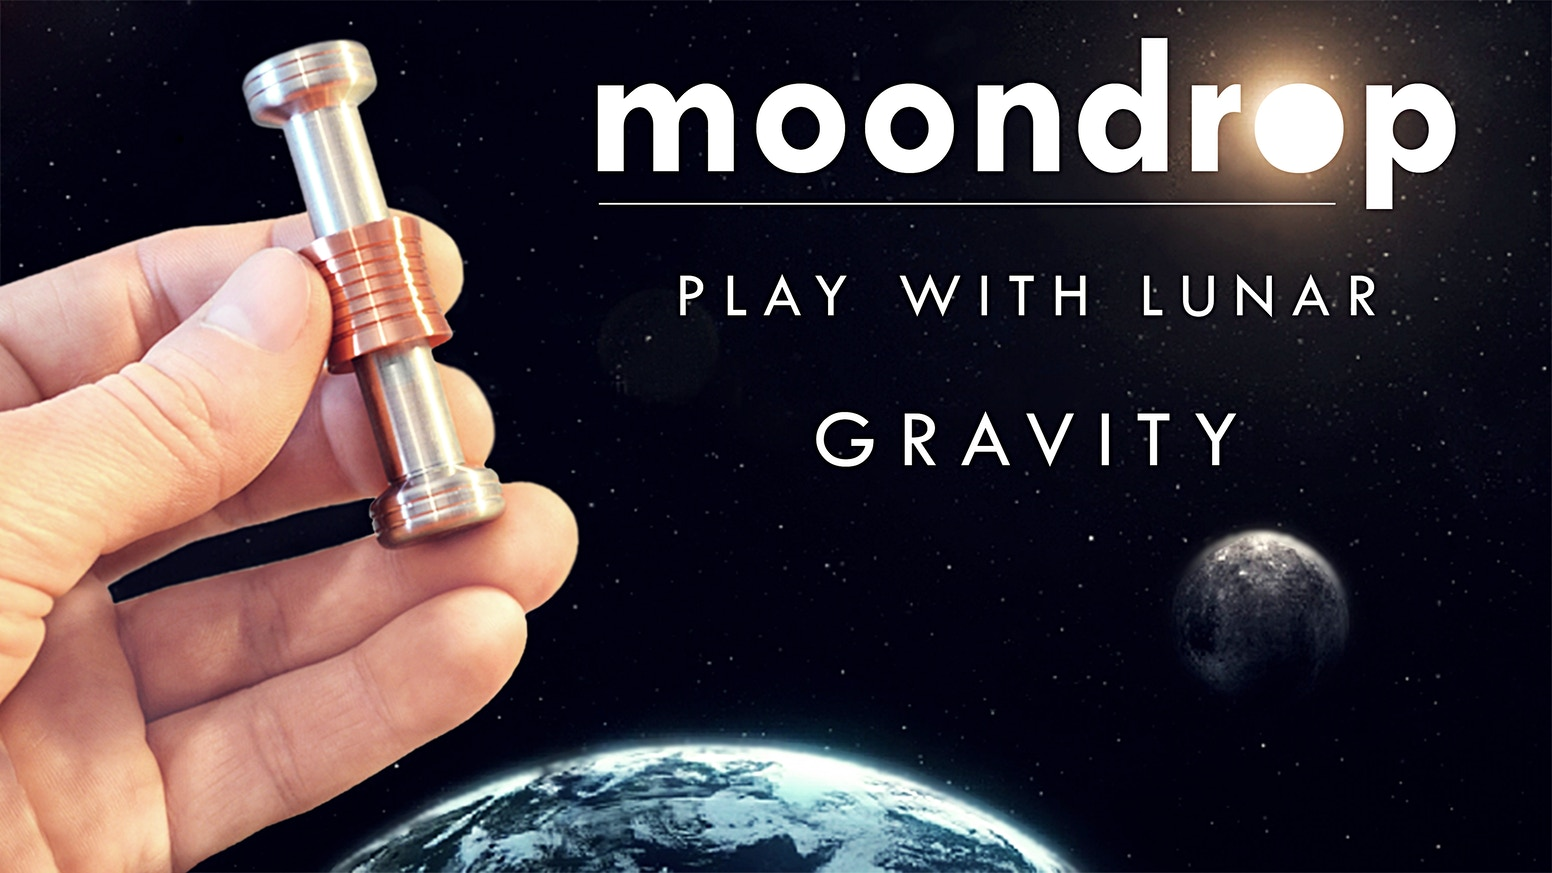 Gravity defying desk toy that imitates the free fall on Mars and Moon. Amazing laws of physics combined with precision machining